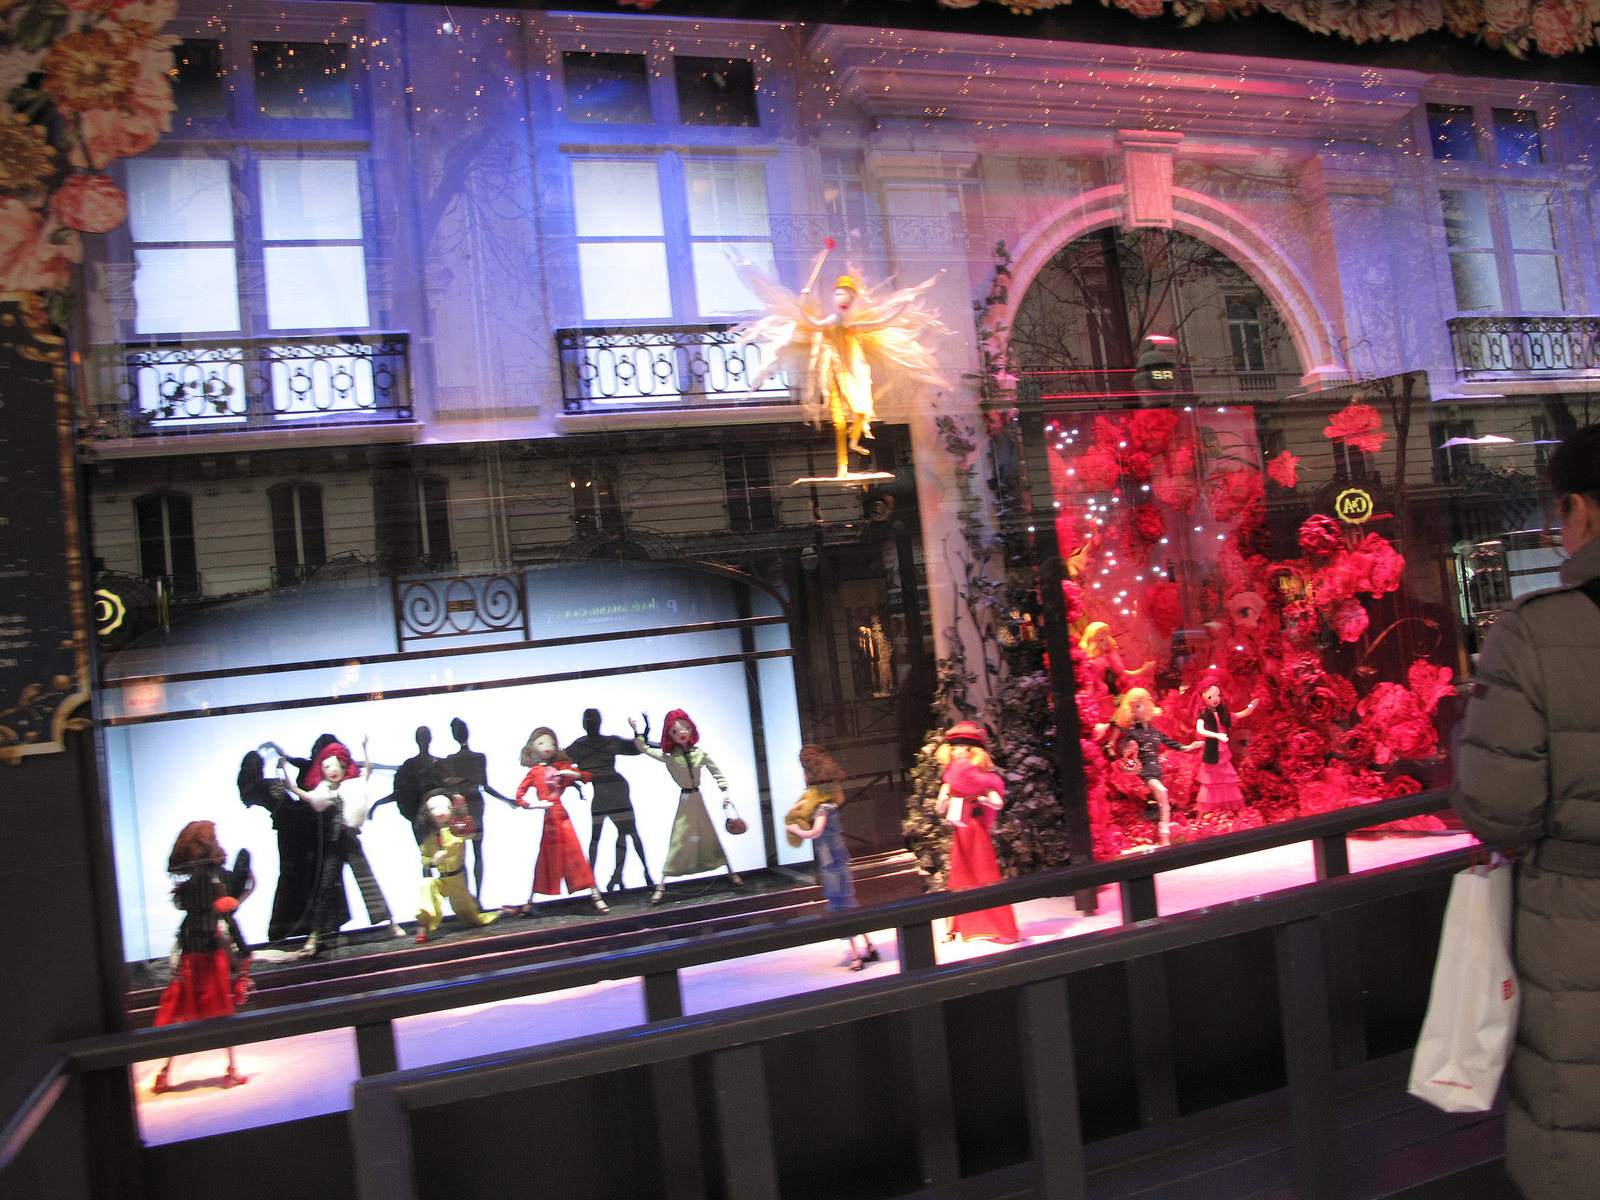 vitrines noel5 Christmas window displays in Paris